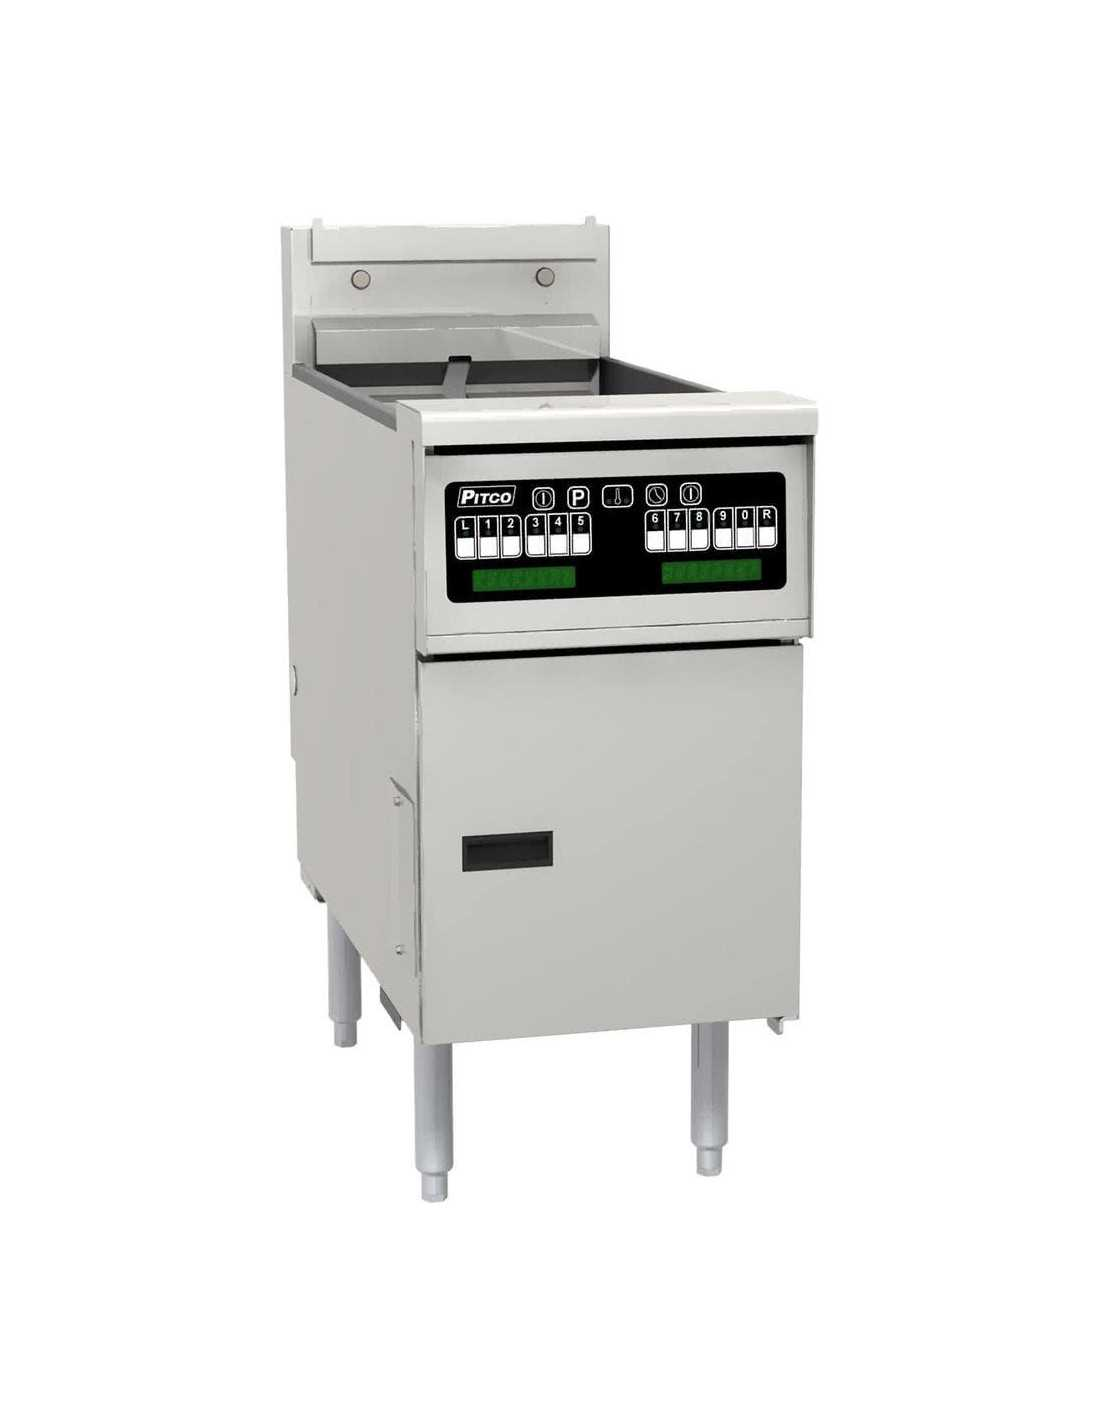 PITCO Electric fryers Kuwait